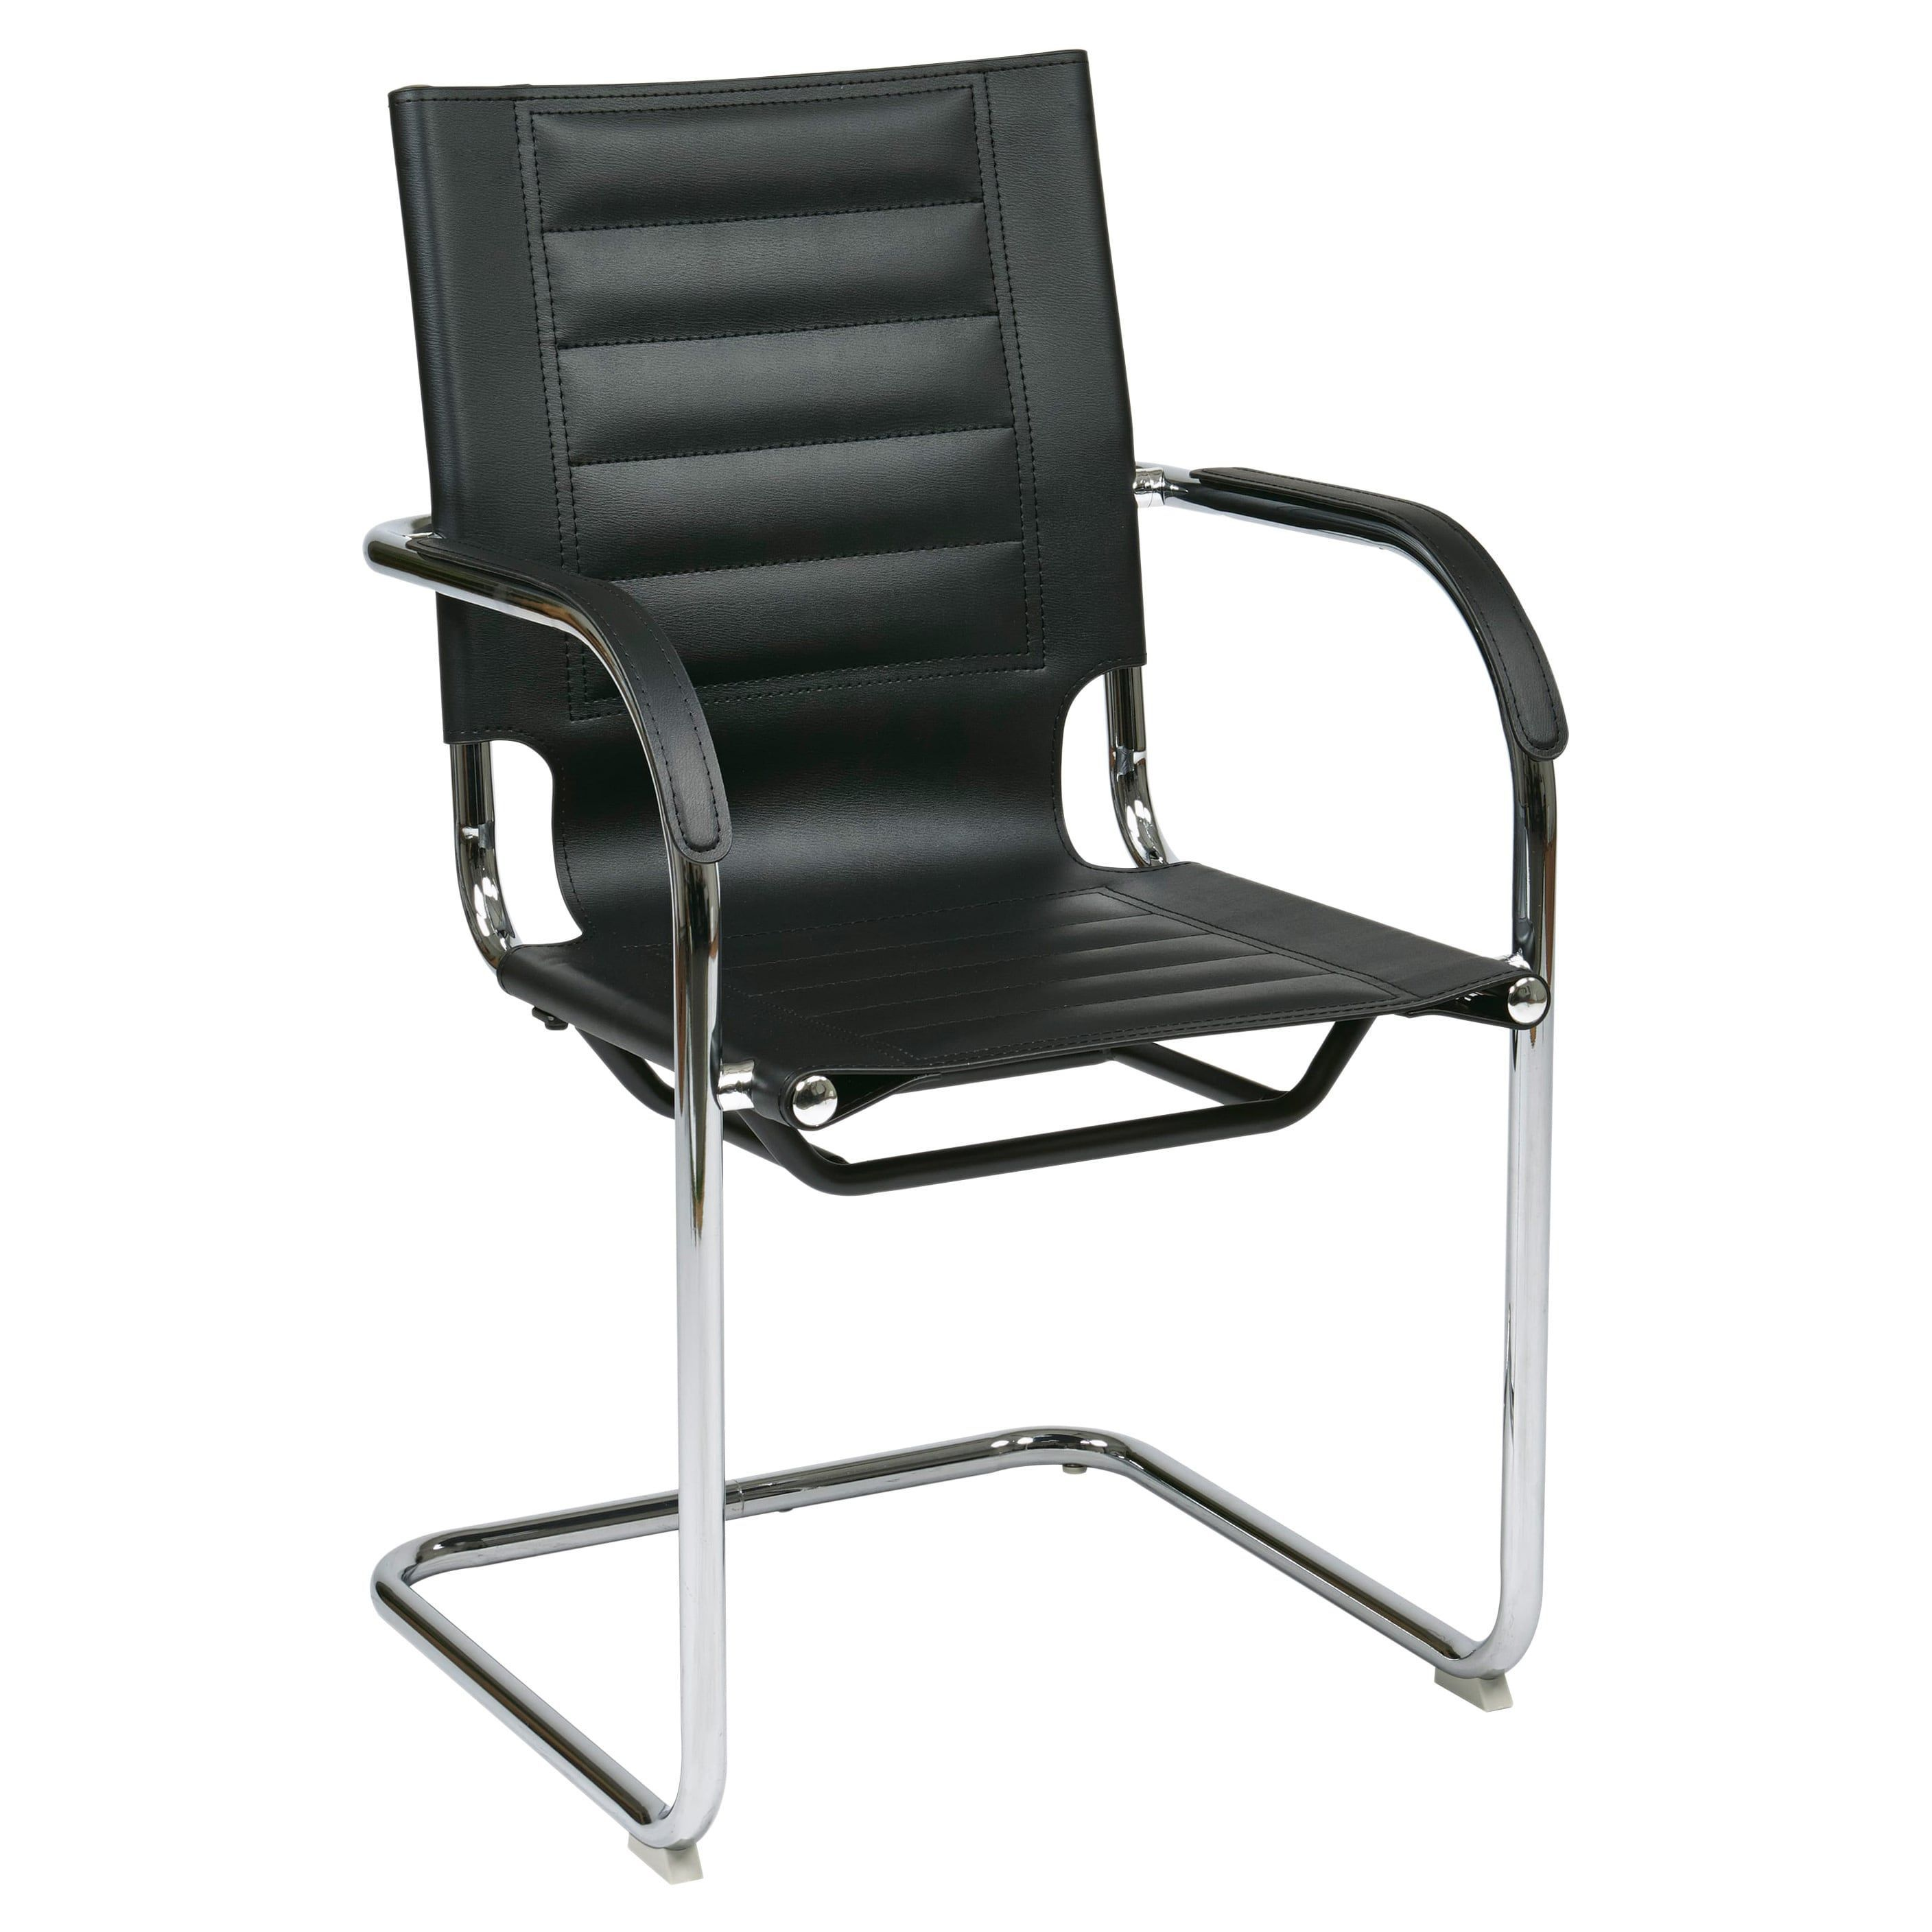 office star trinidad guest chair office chair pinterest office